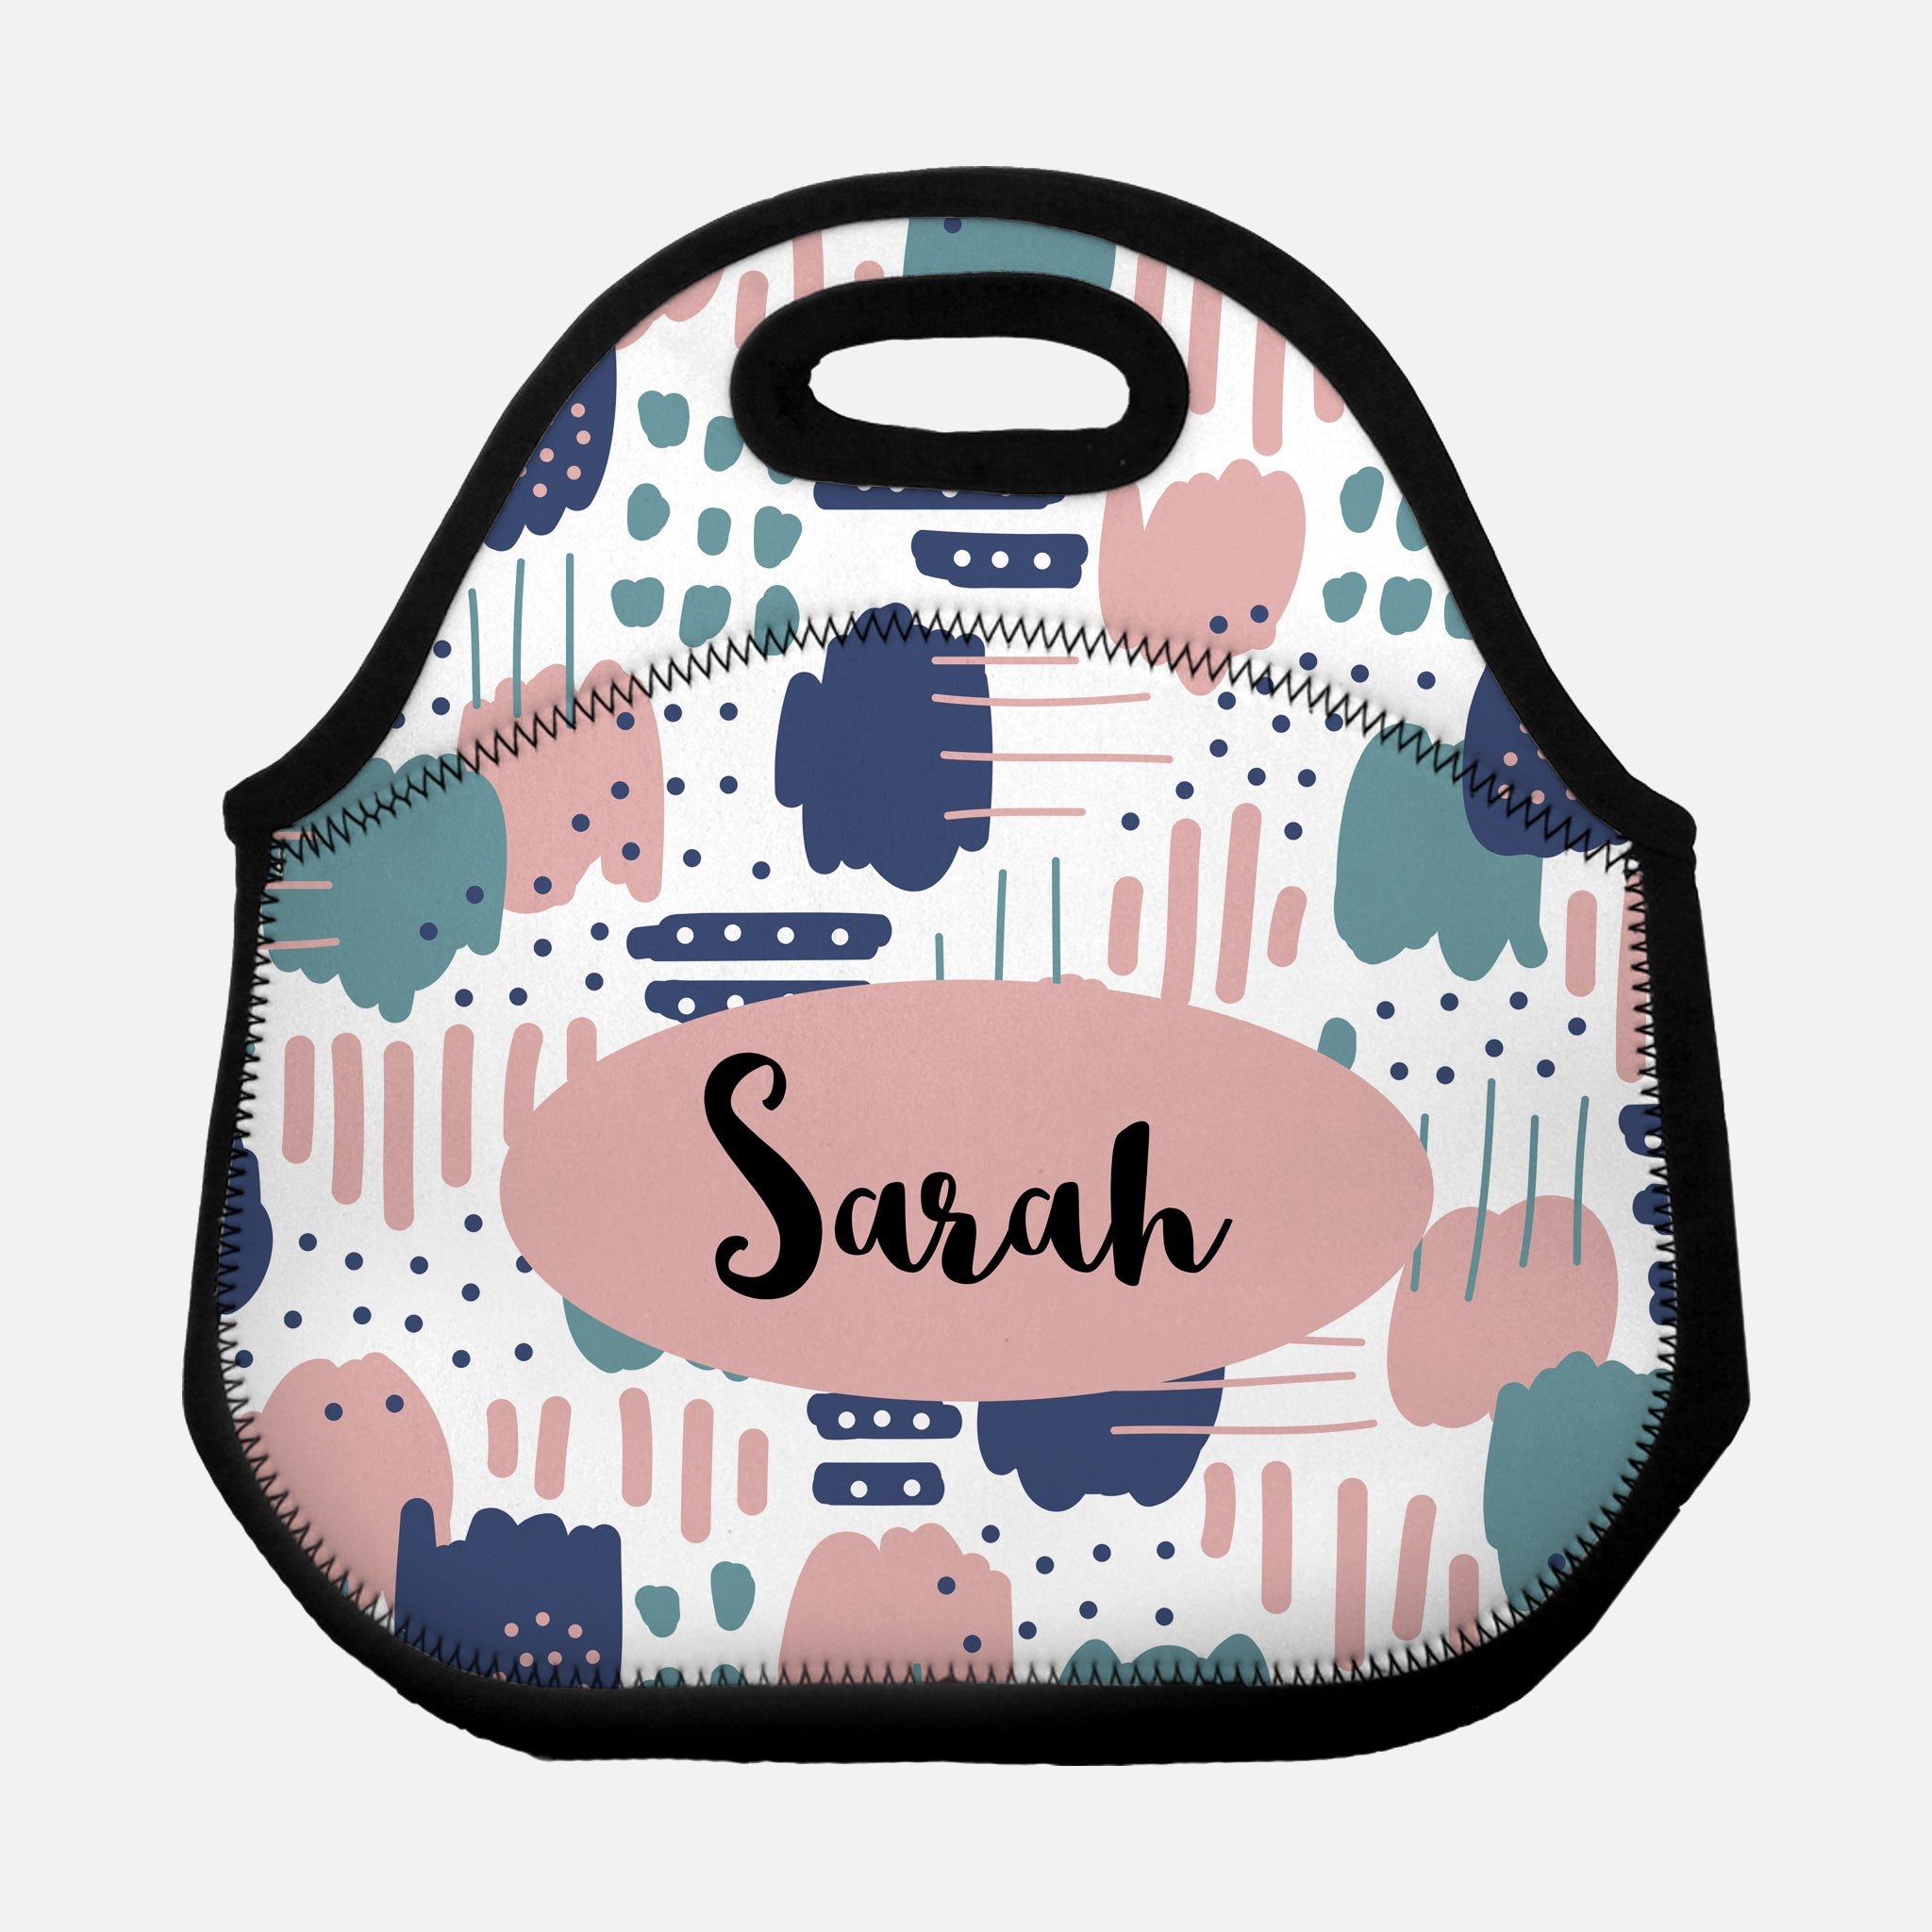 Abstract Trendy Modern Artistic Brush Strokes Pattern Blush Pink Teal Navy Blue Personalized Name Lunch Tote Bag Neoprene Insulated - By Happy Cat Prints